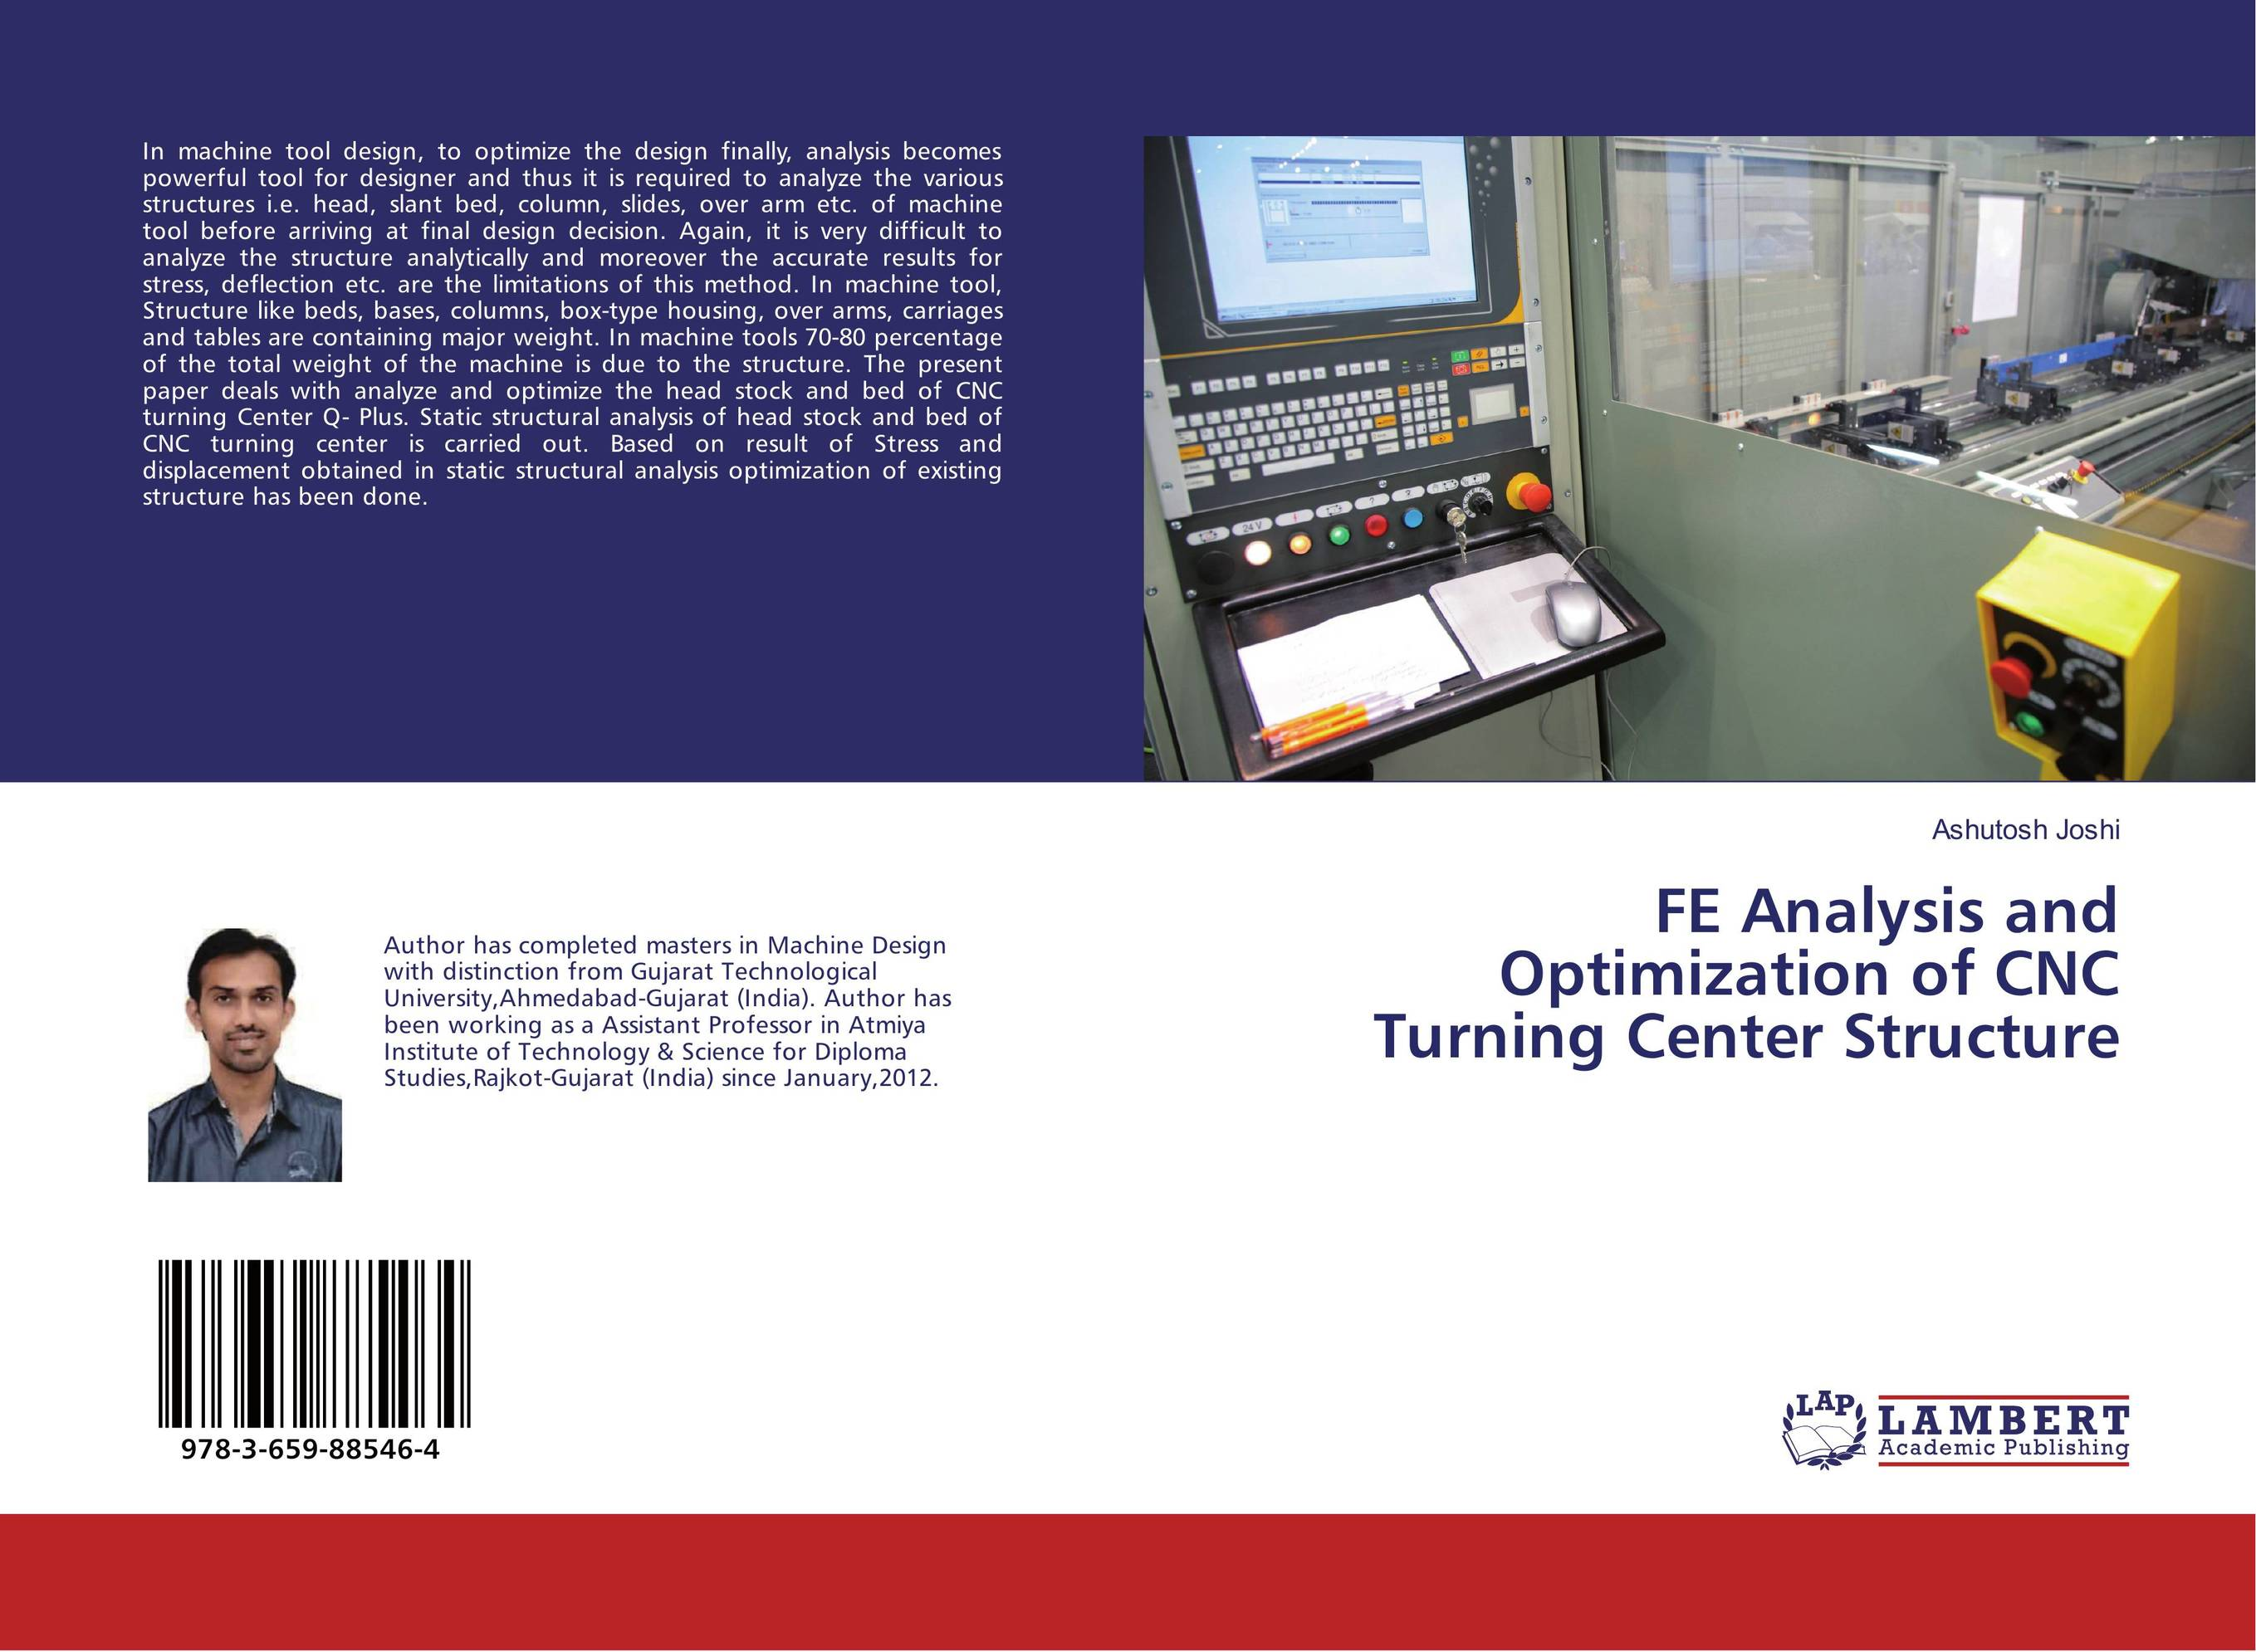 FE Analysis and Optimization of CNC Turning Center Structure bijoy kumar nanda and ashirbad swain analysis of machine tool structure using rsm approach